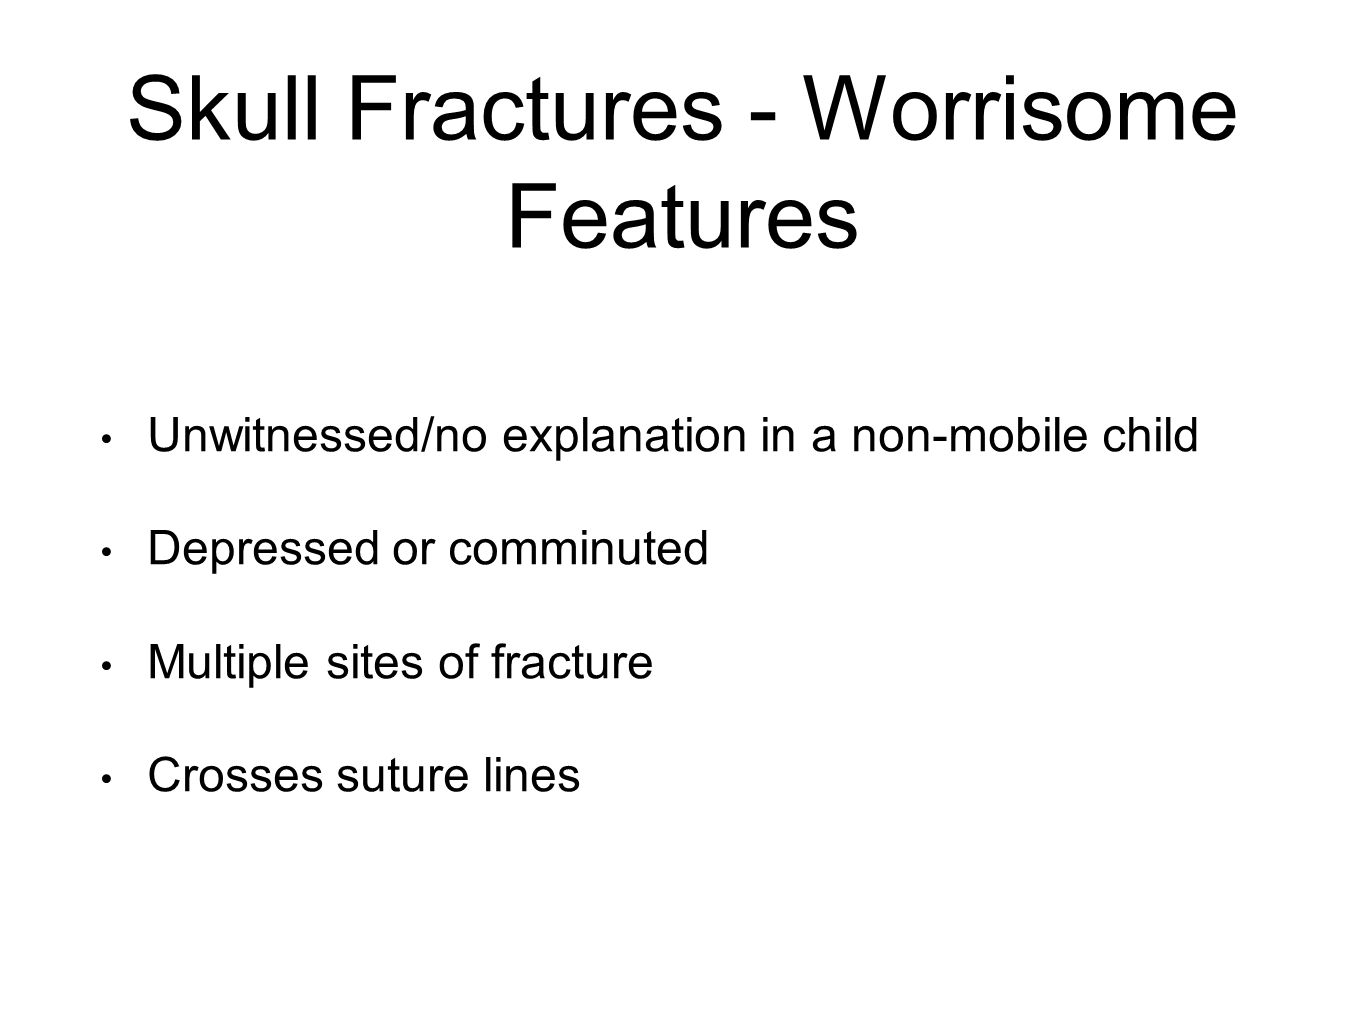 Skull Fractures - Worrisome Features Unwitnessed/no explanation in a non-mobile child Depressed or comminuted Multiple sites of fracture Crosses suture lines